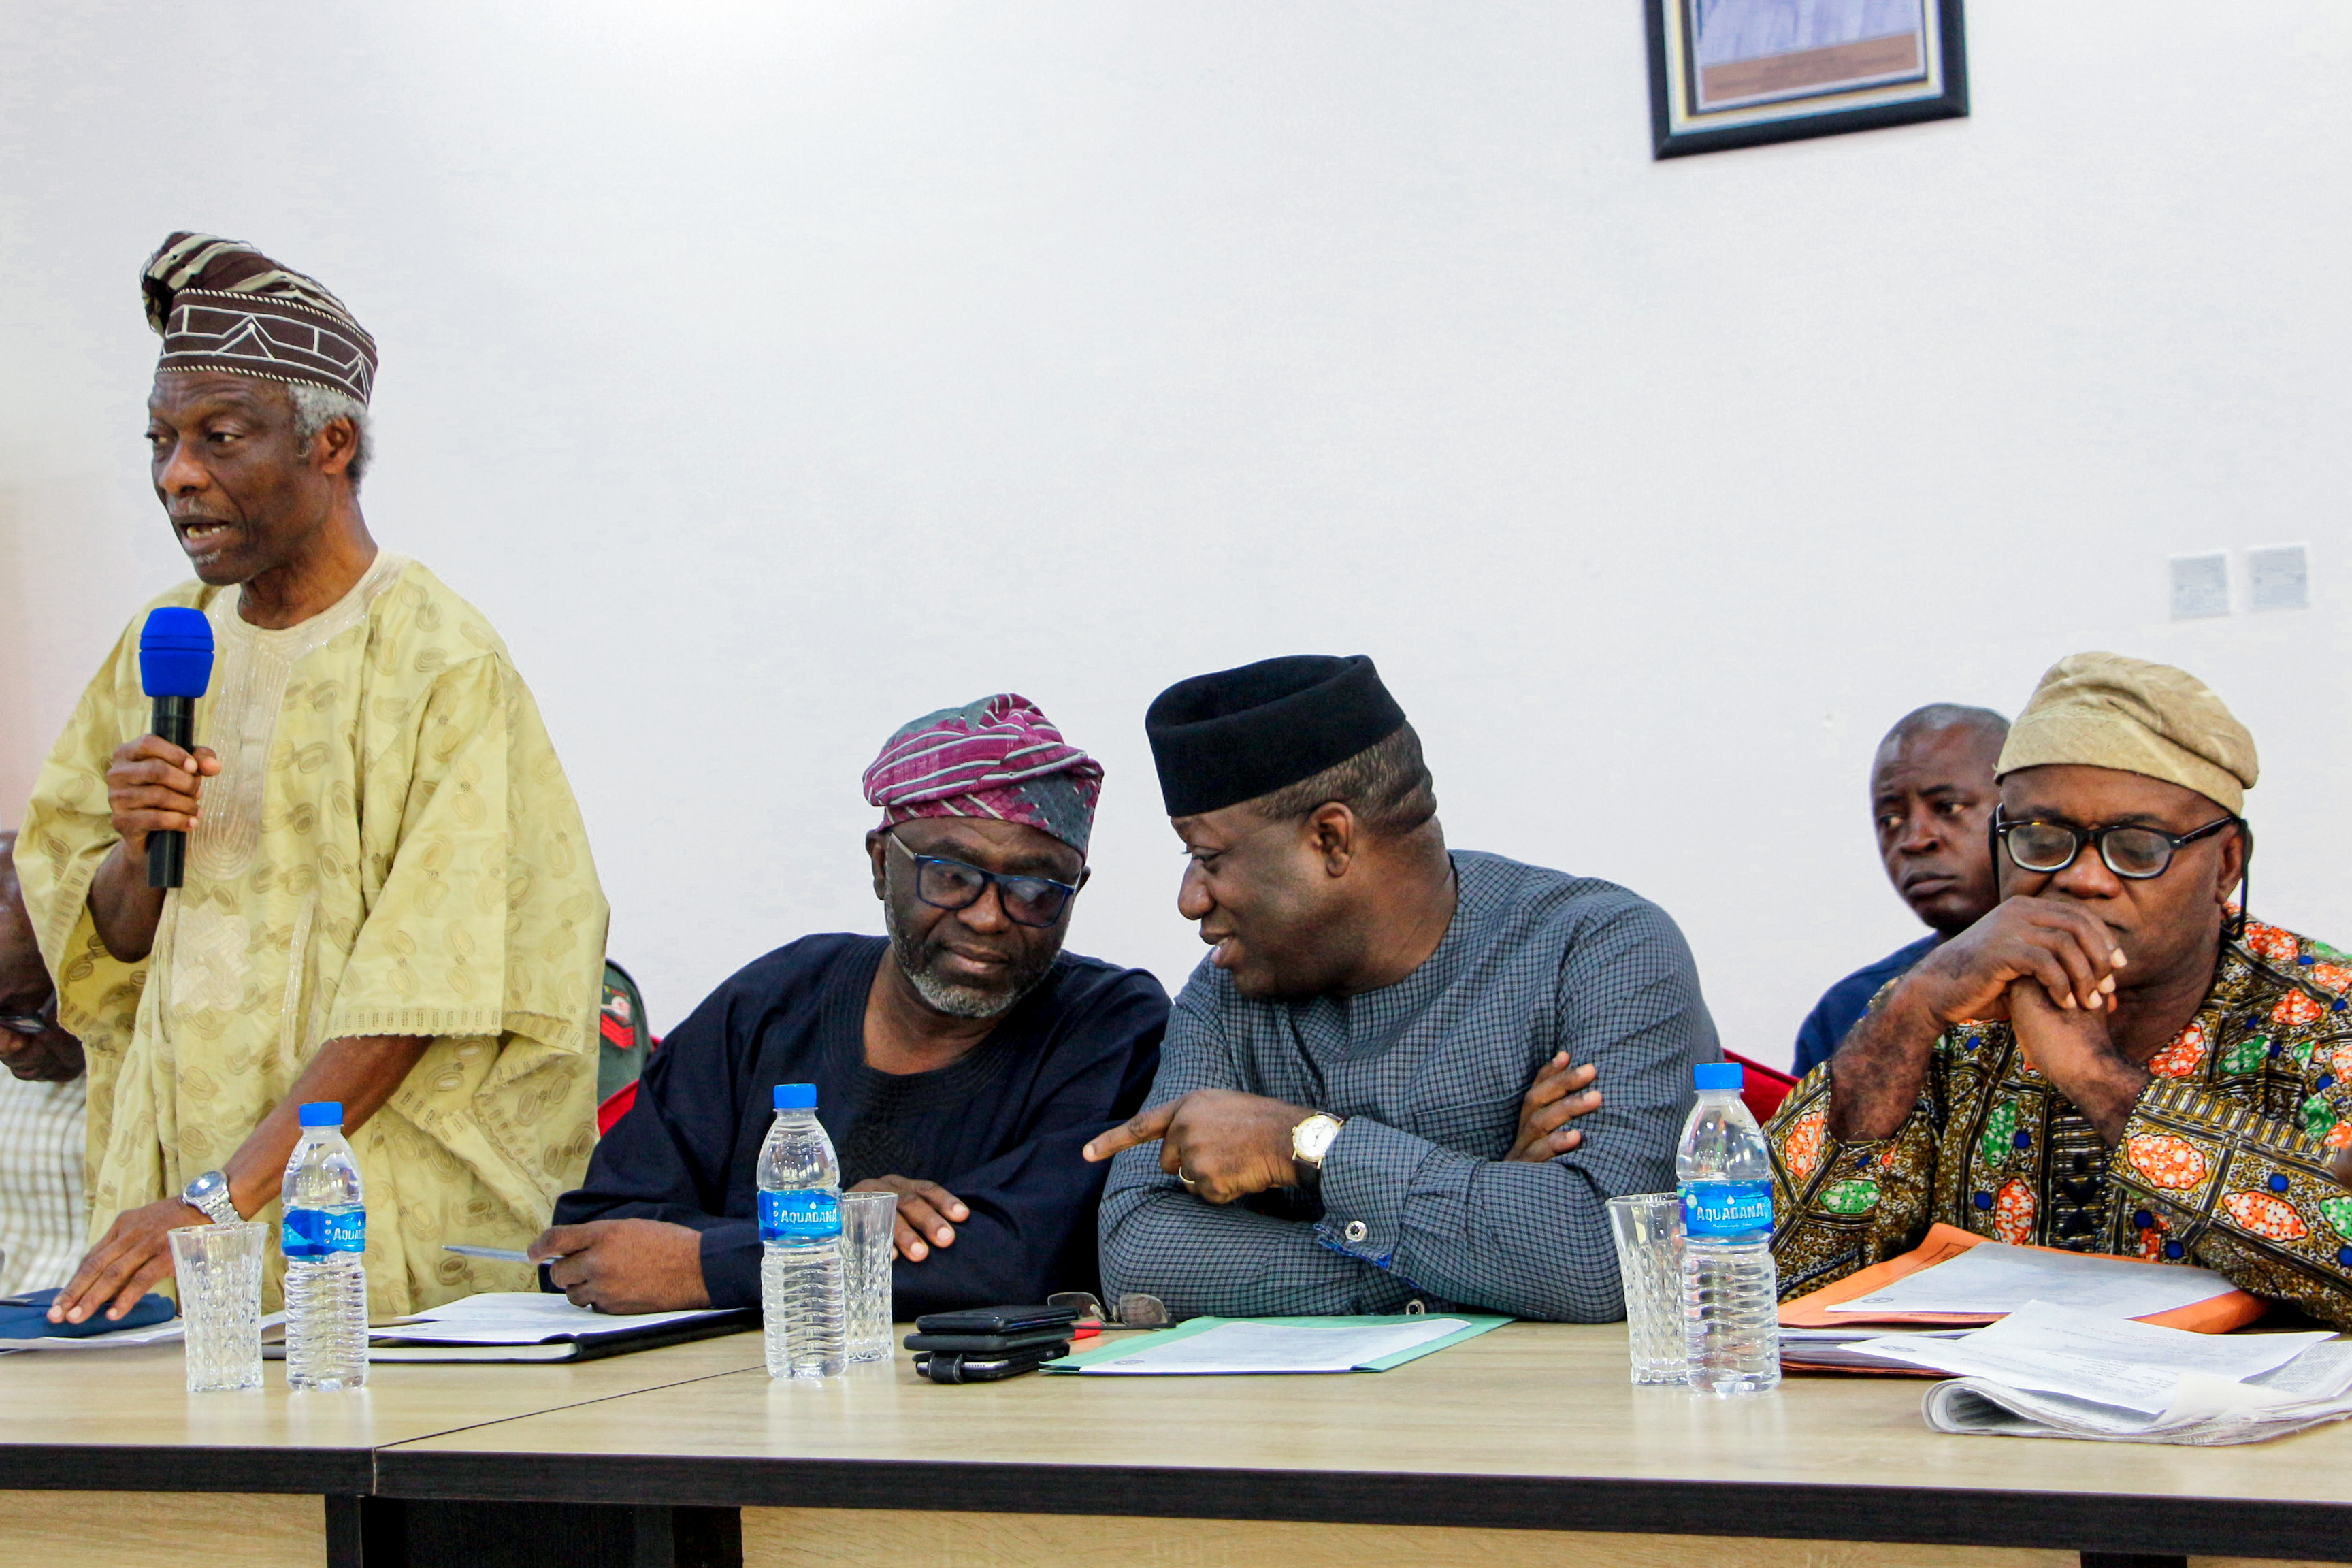 Restructuring: Be more tactical in your approach, Fayemi urges South West leaders